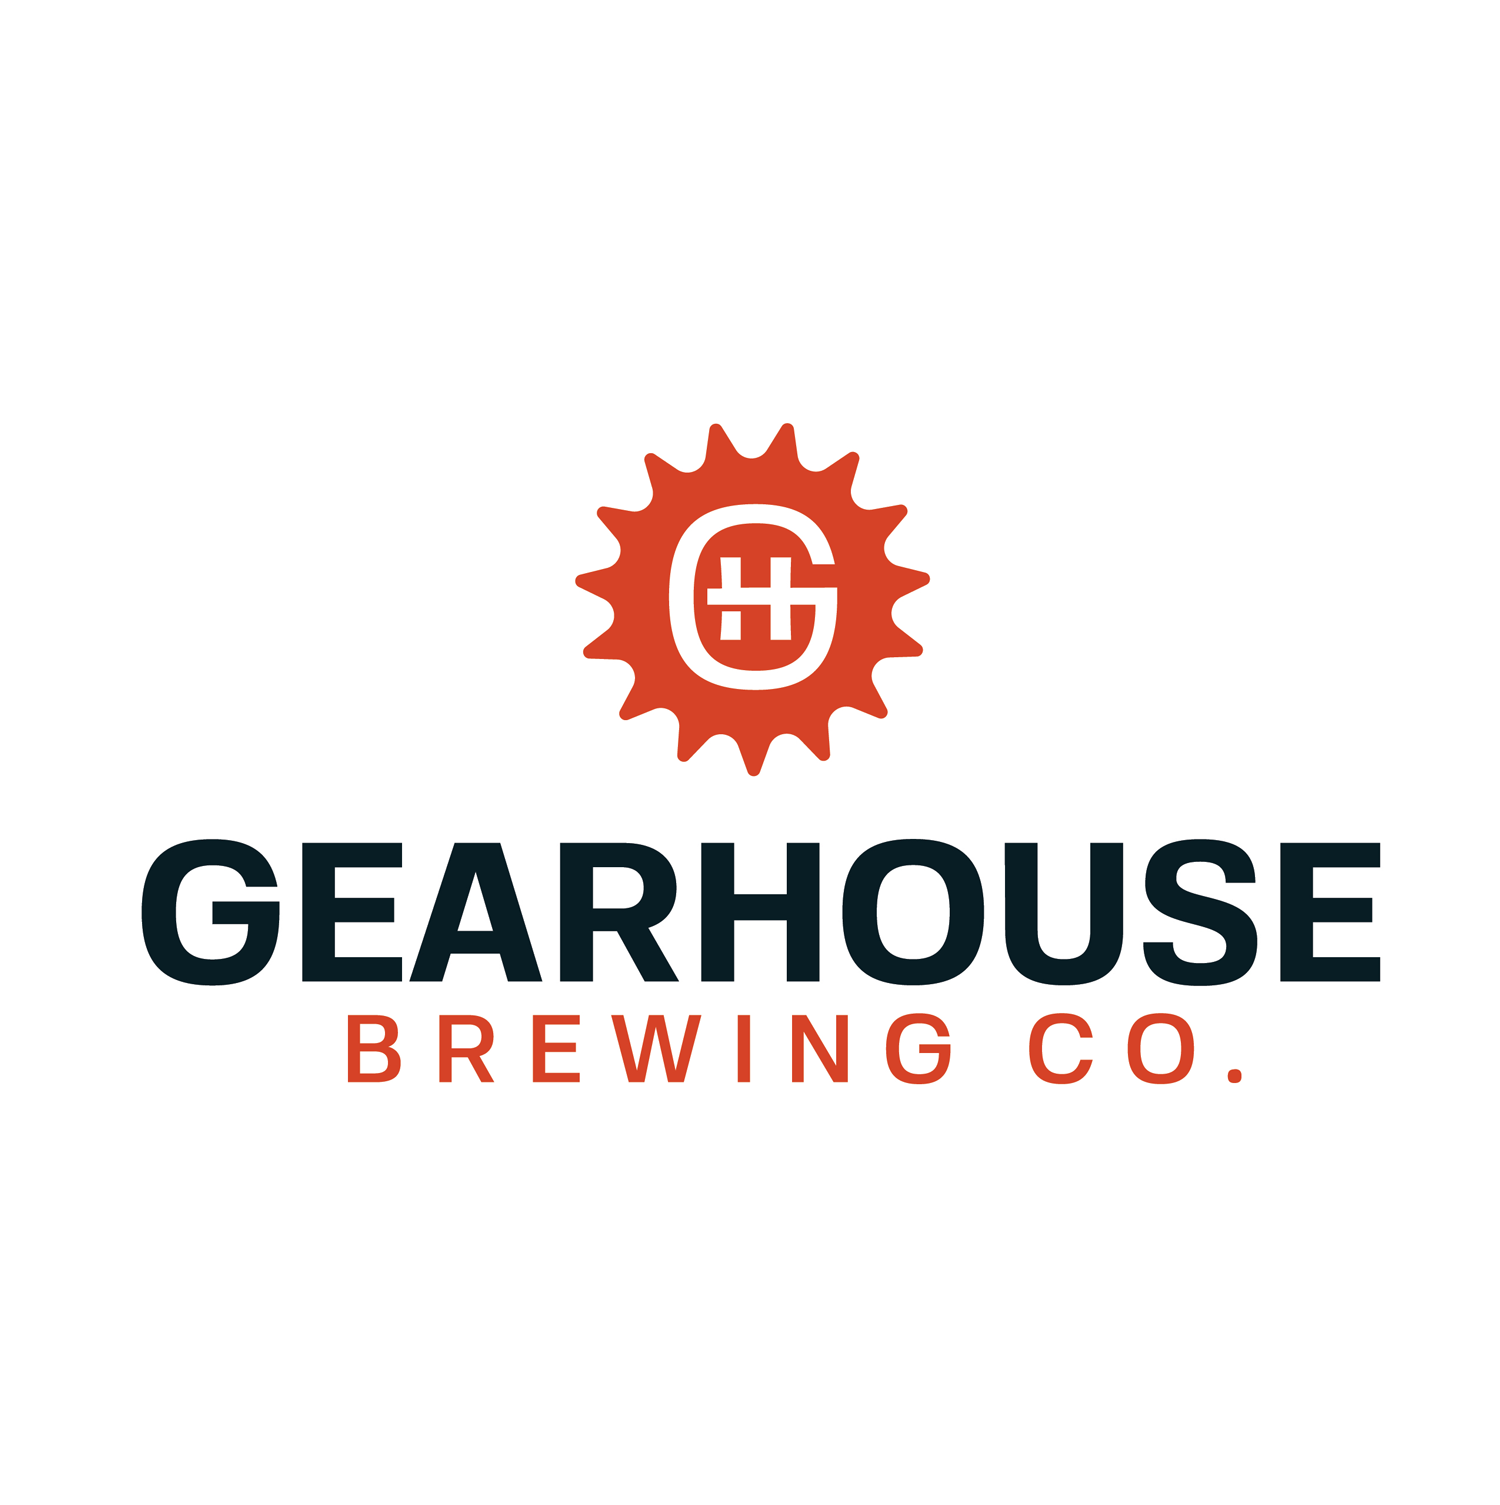 Gearhouse Brewing Co.